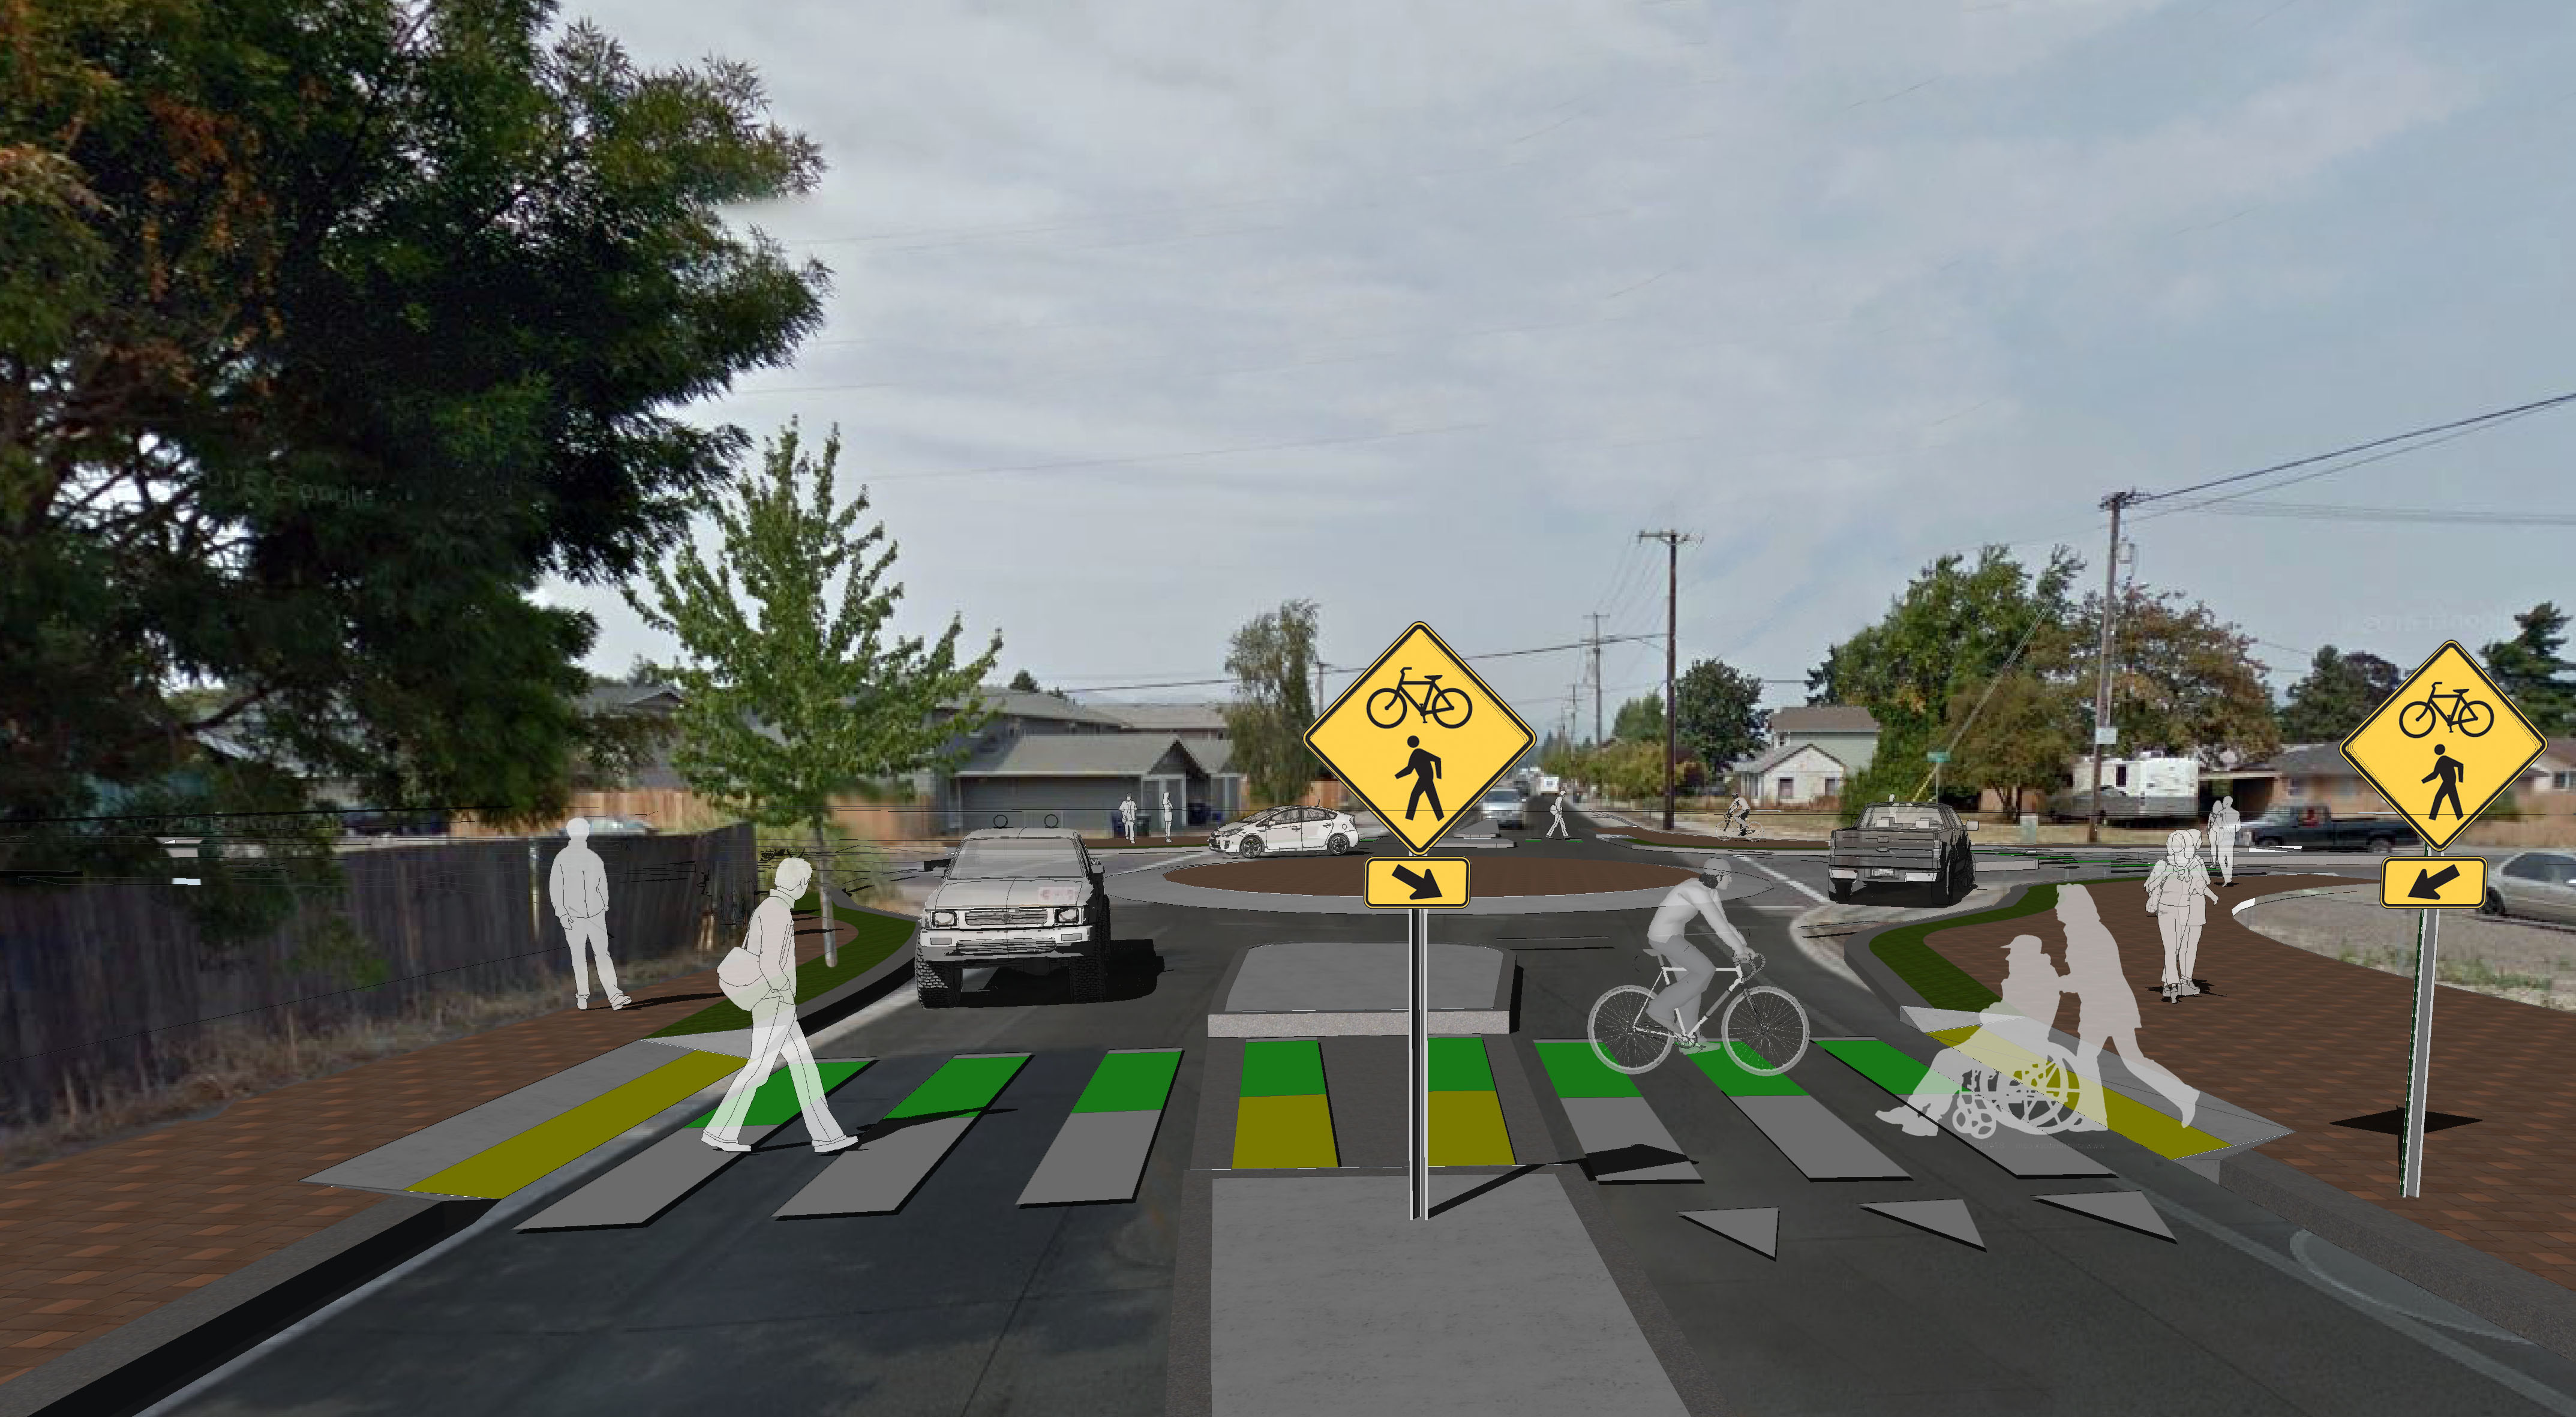 42nd St Intersection Roundabout Design Concept